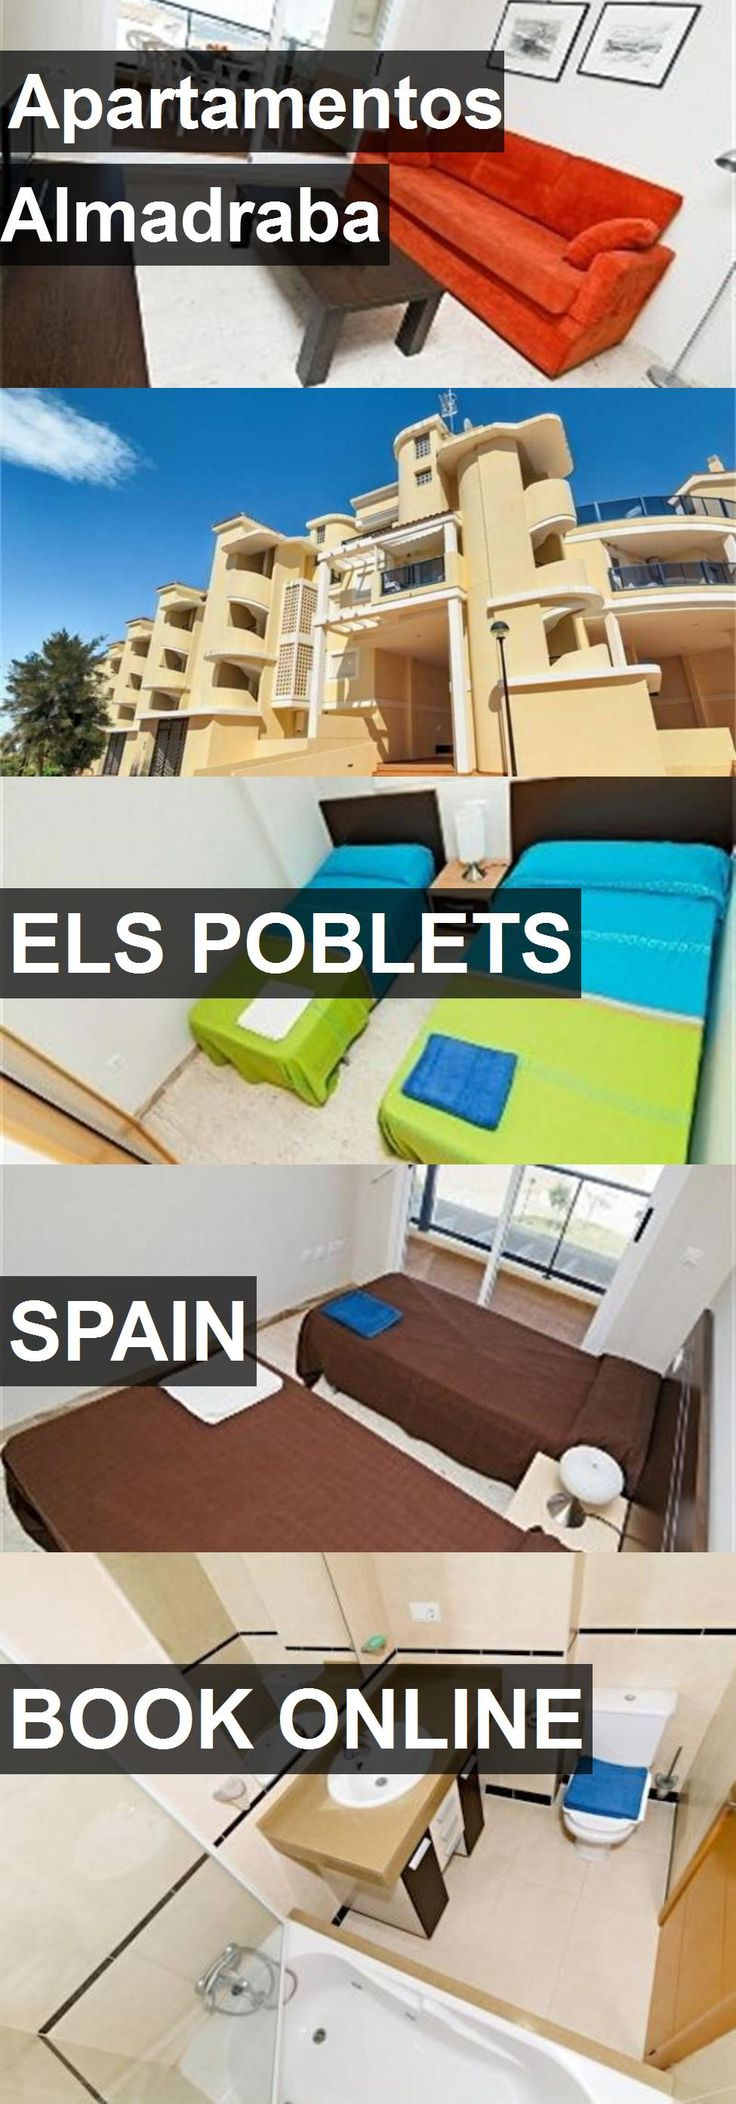 Hotel Apartamentos Almadraba in Els Poblets, Spain. For more information, photos, reviews and best prices please follow the link. #Spain #ElsPoblets #travel #vacation #hotel